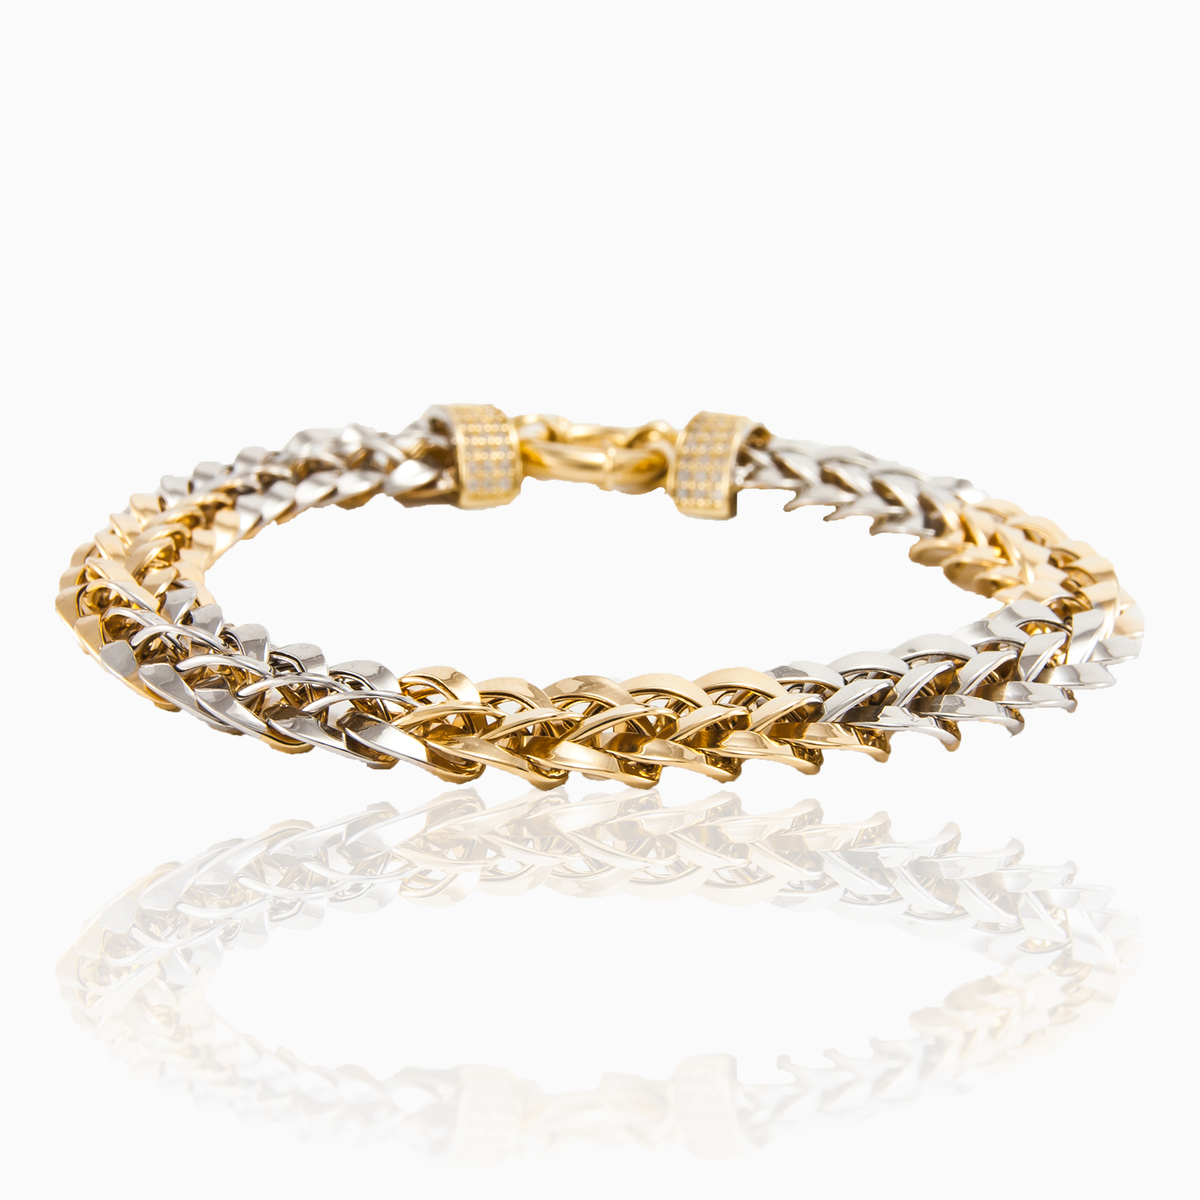 Yellow & white 14k gold bracelet for women - Monte Cristo